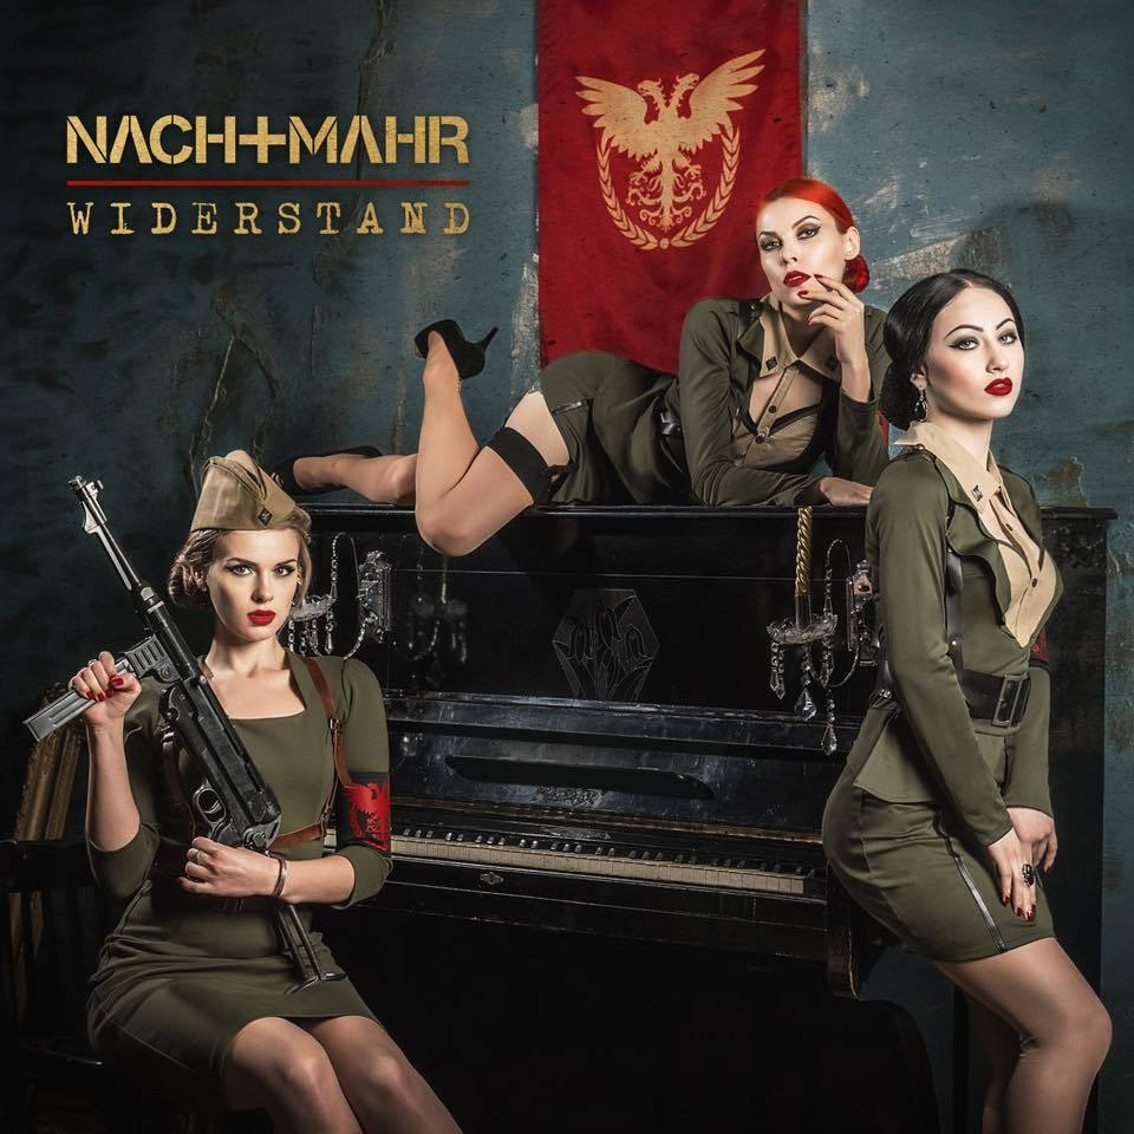 Nachtmahr joins the resistance with their newest EP 'Widerstand'